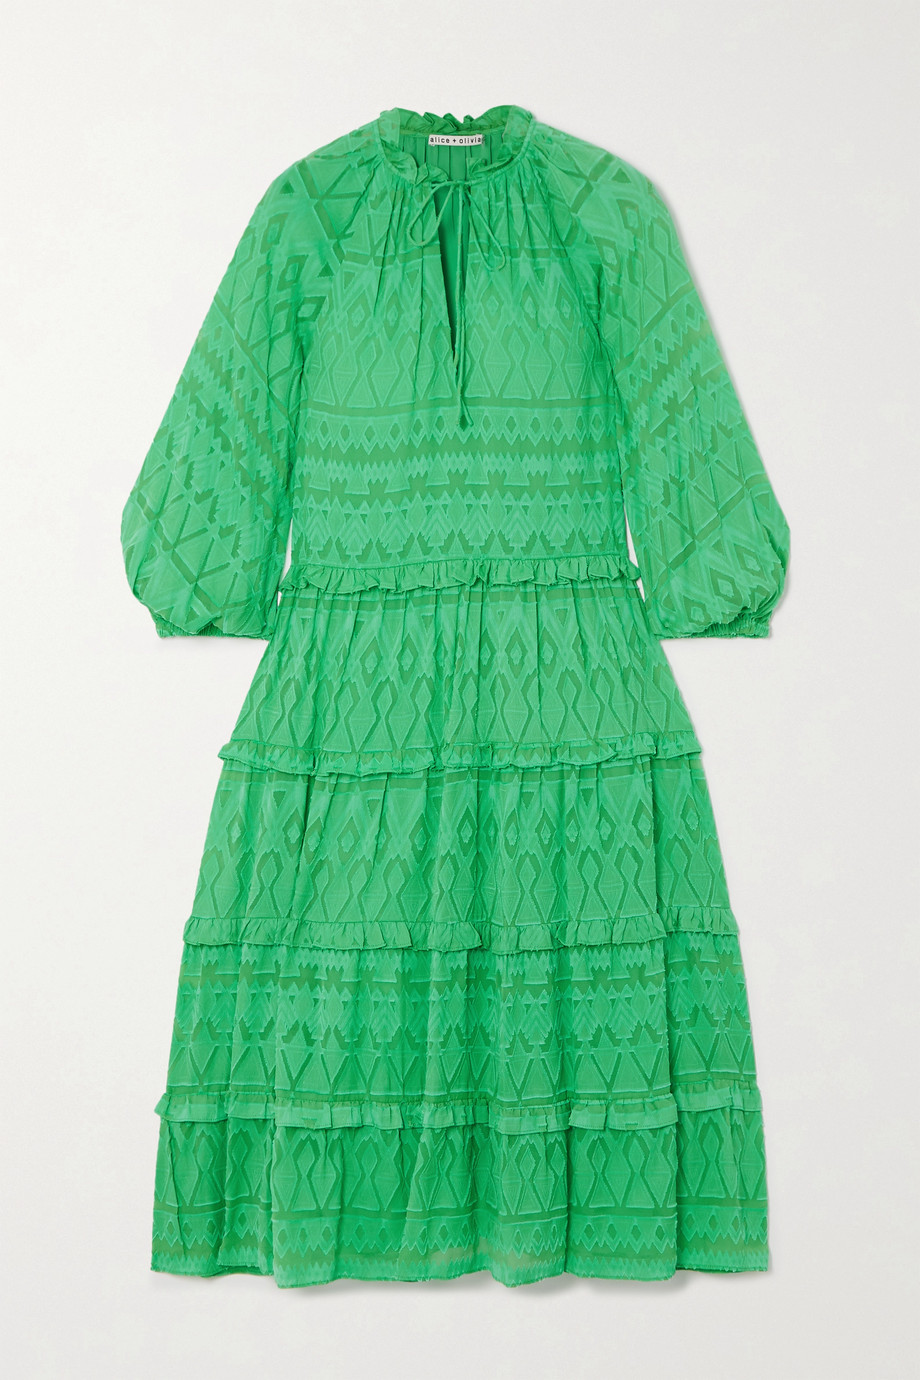 Alice + Olivia Layla tiered fil coupé silk and cotton-blend midi dress